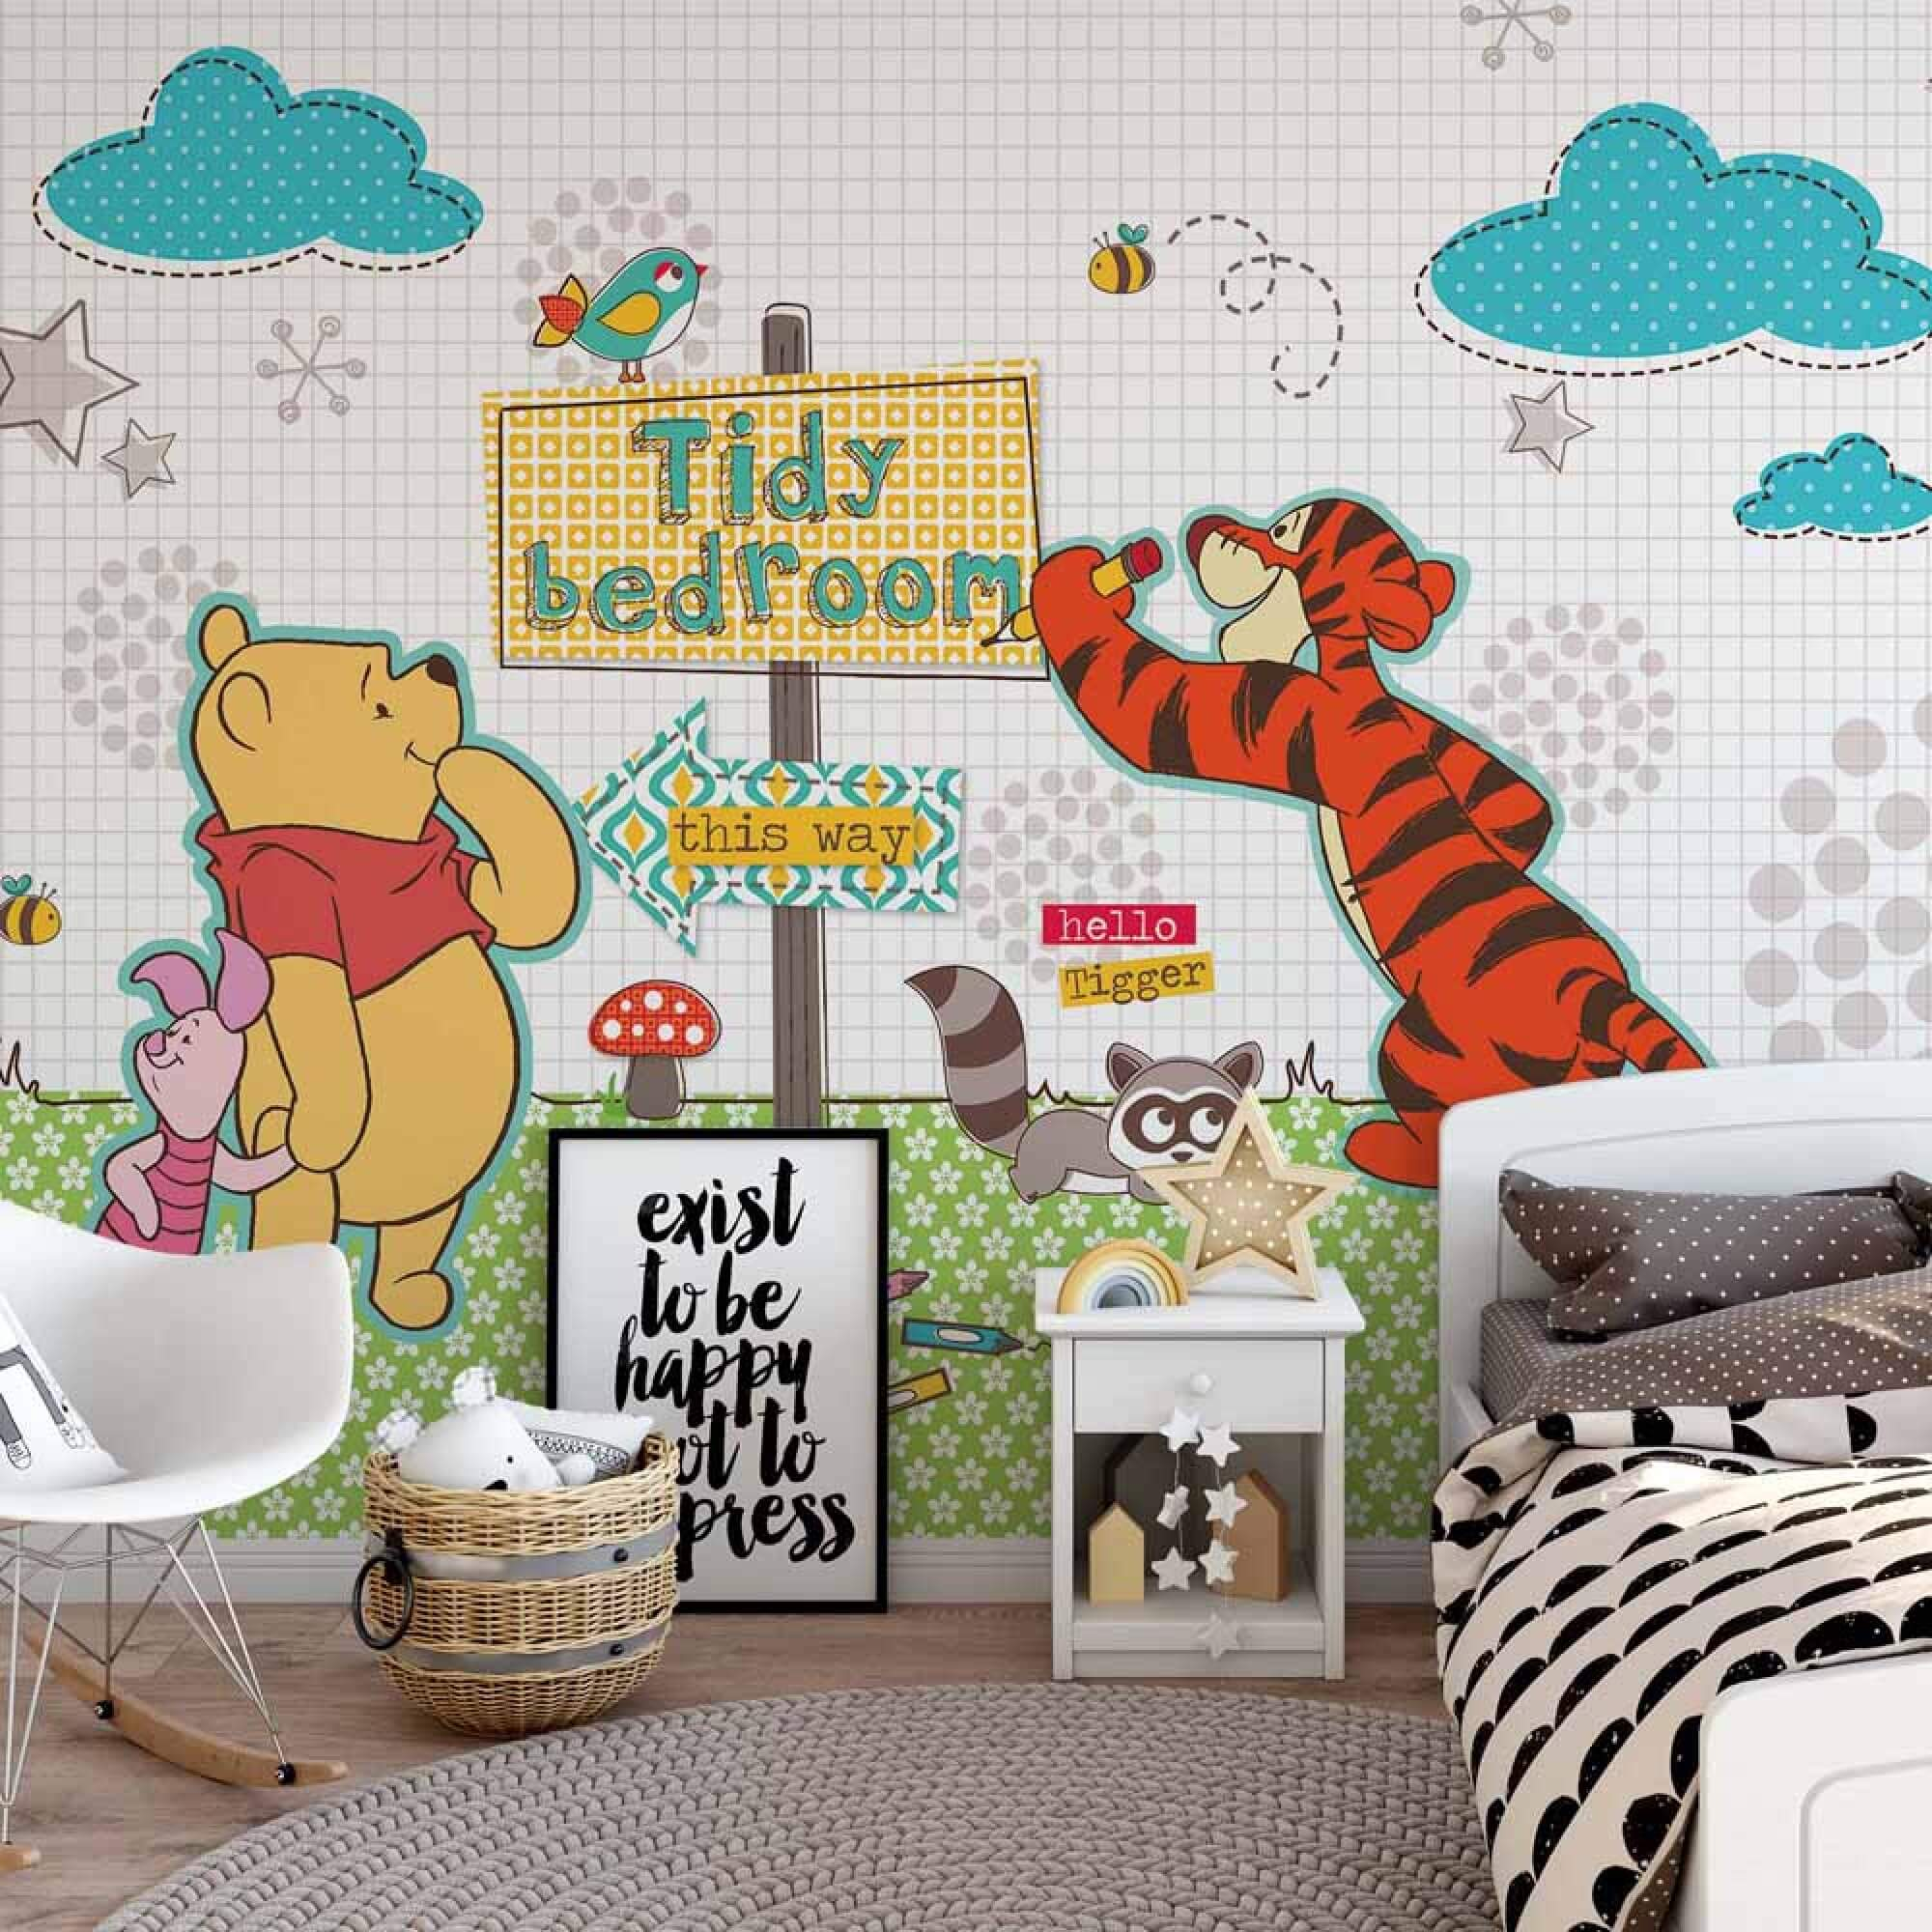 79x71inch Wall mural wallpaper for kids bedroom Disney Winnie Pooh baby room art